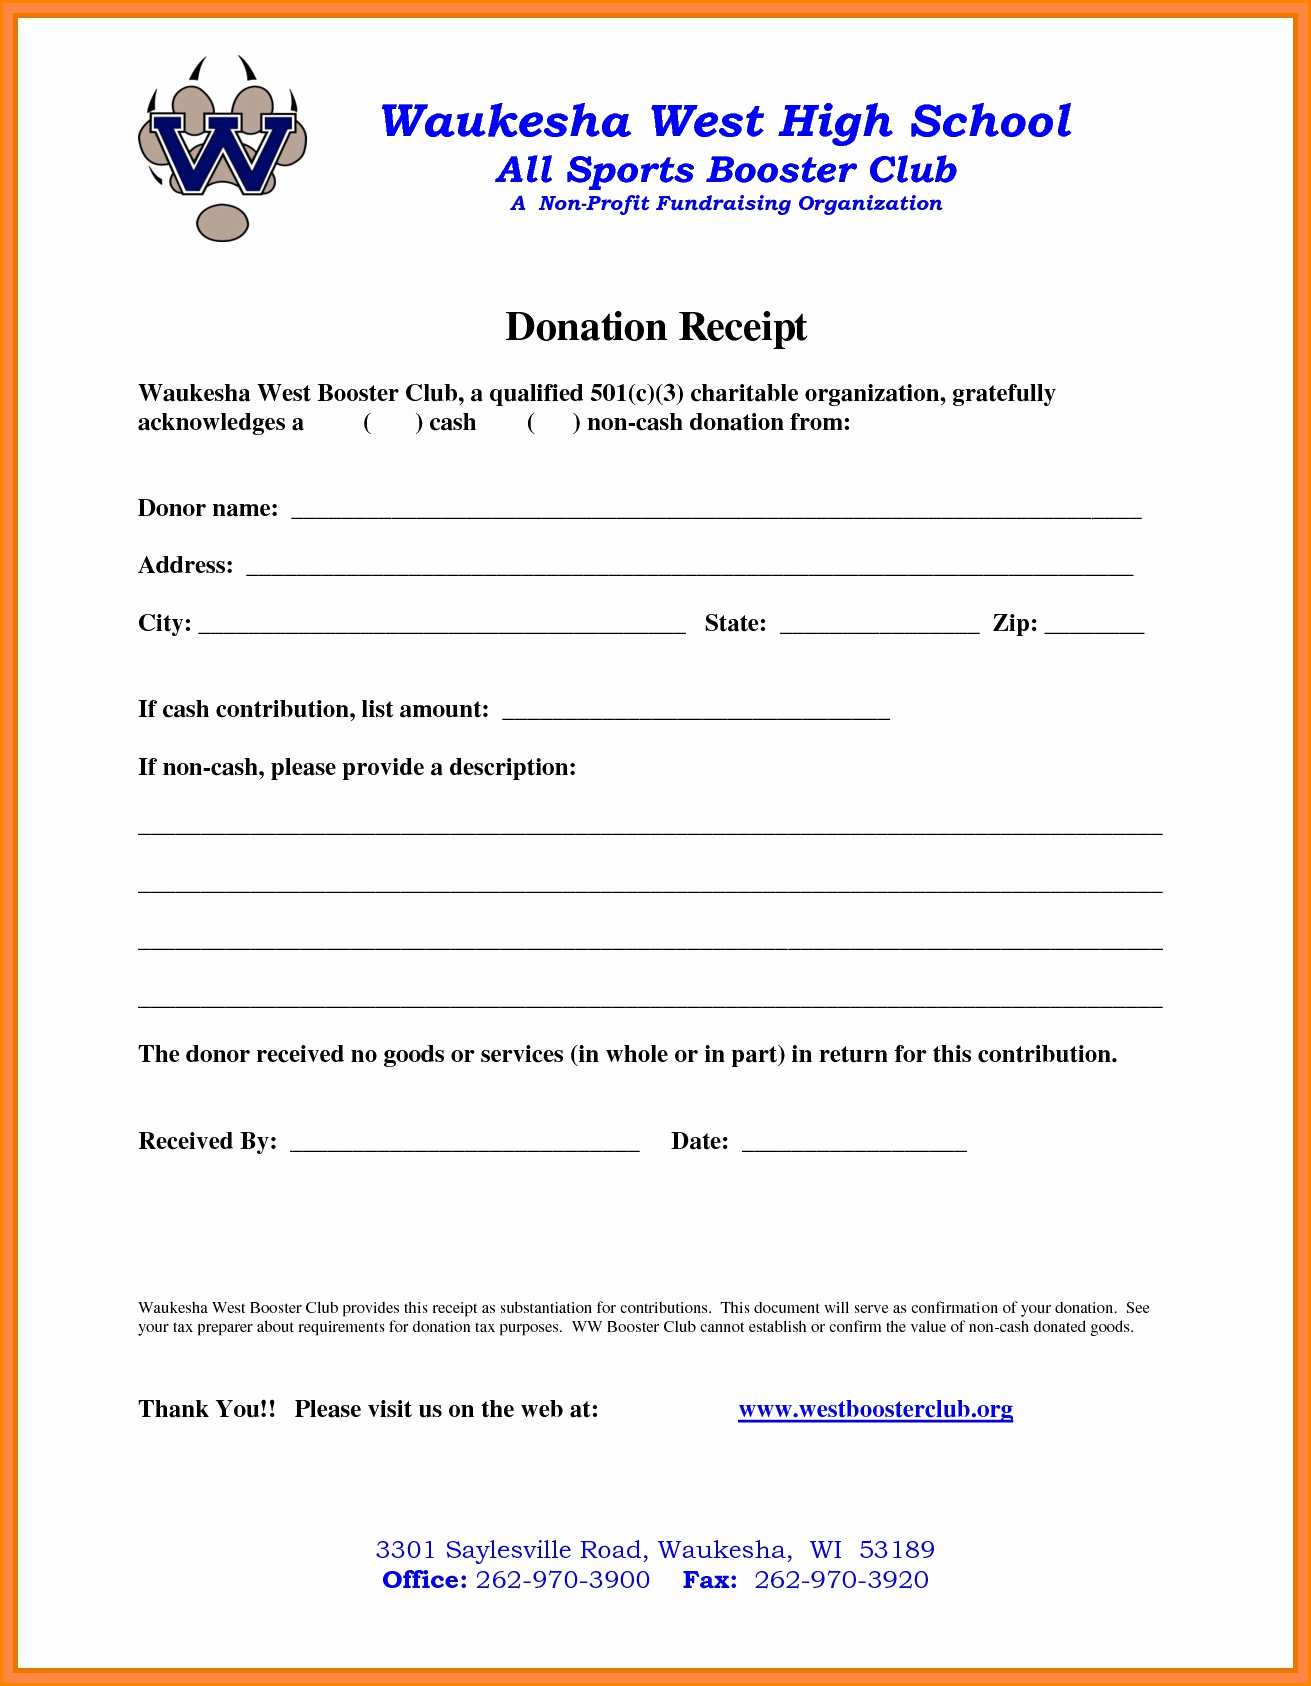 Tax Deductible Donation Receipt Template New 5 501c3 Donation Receipt